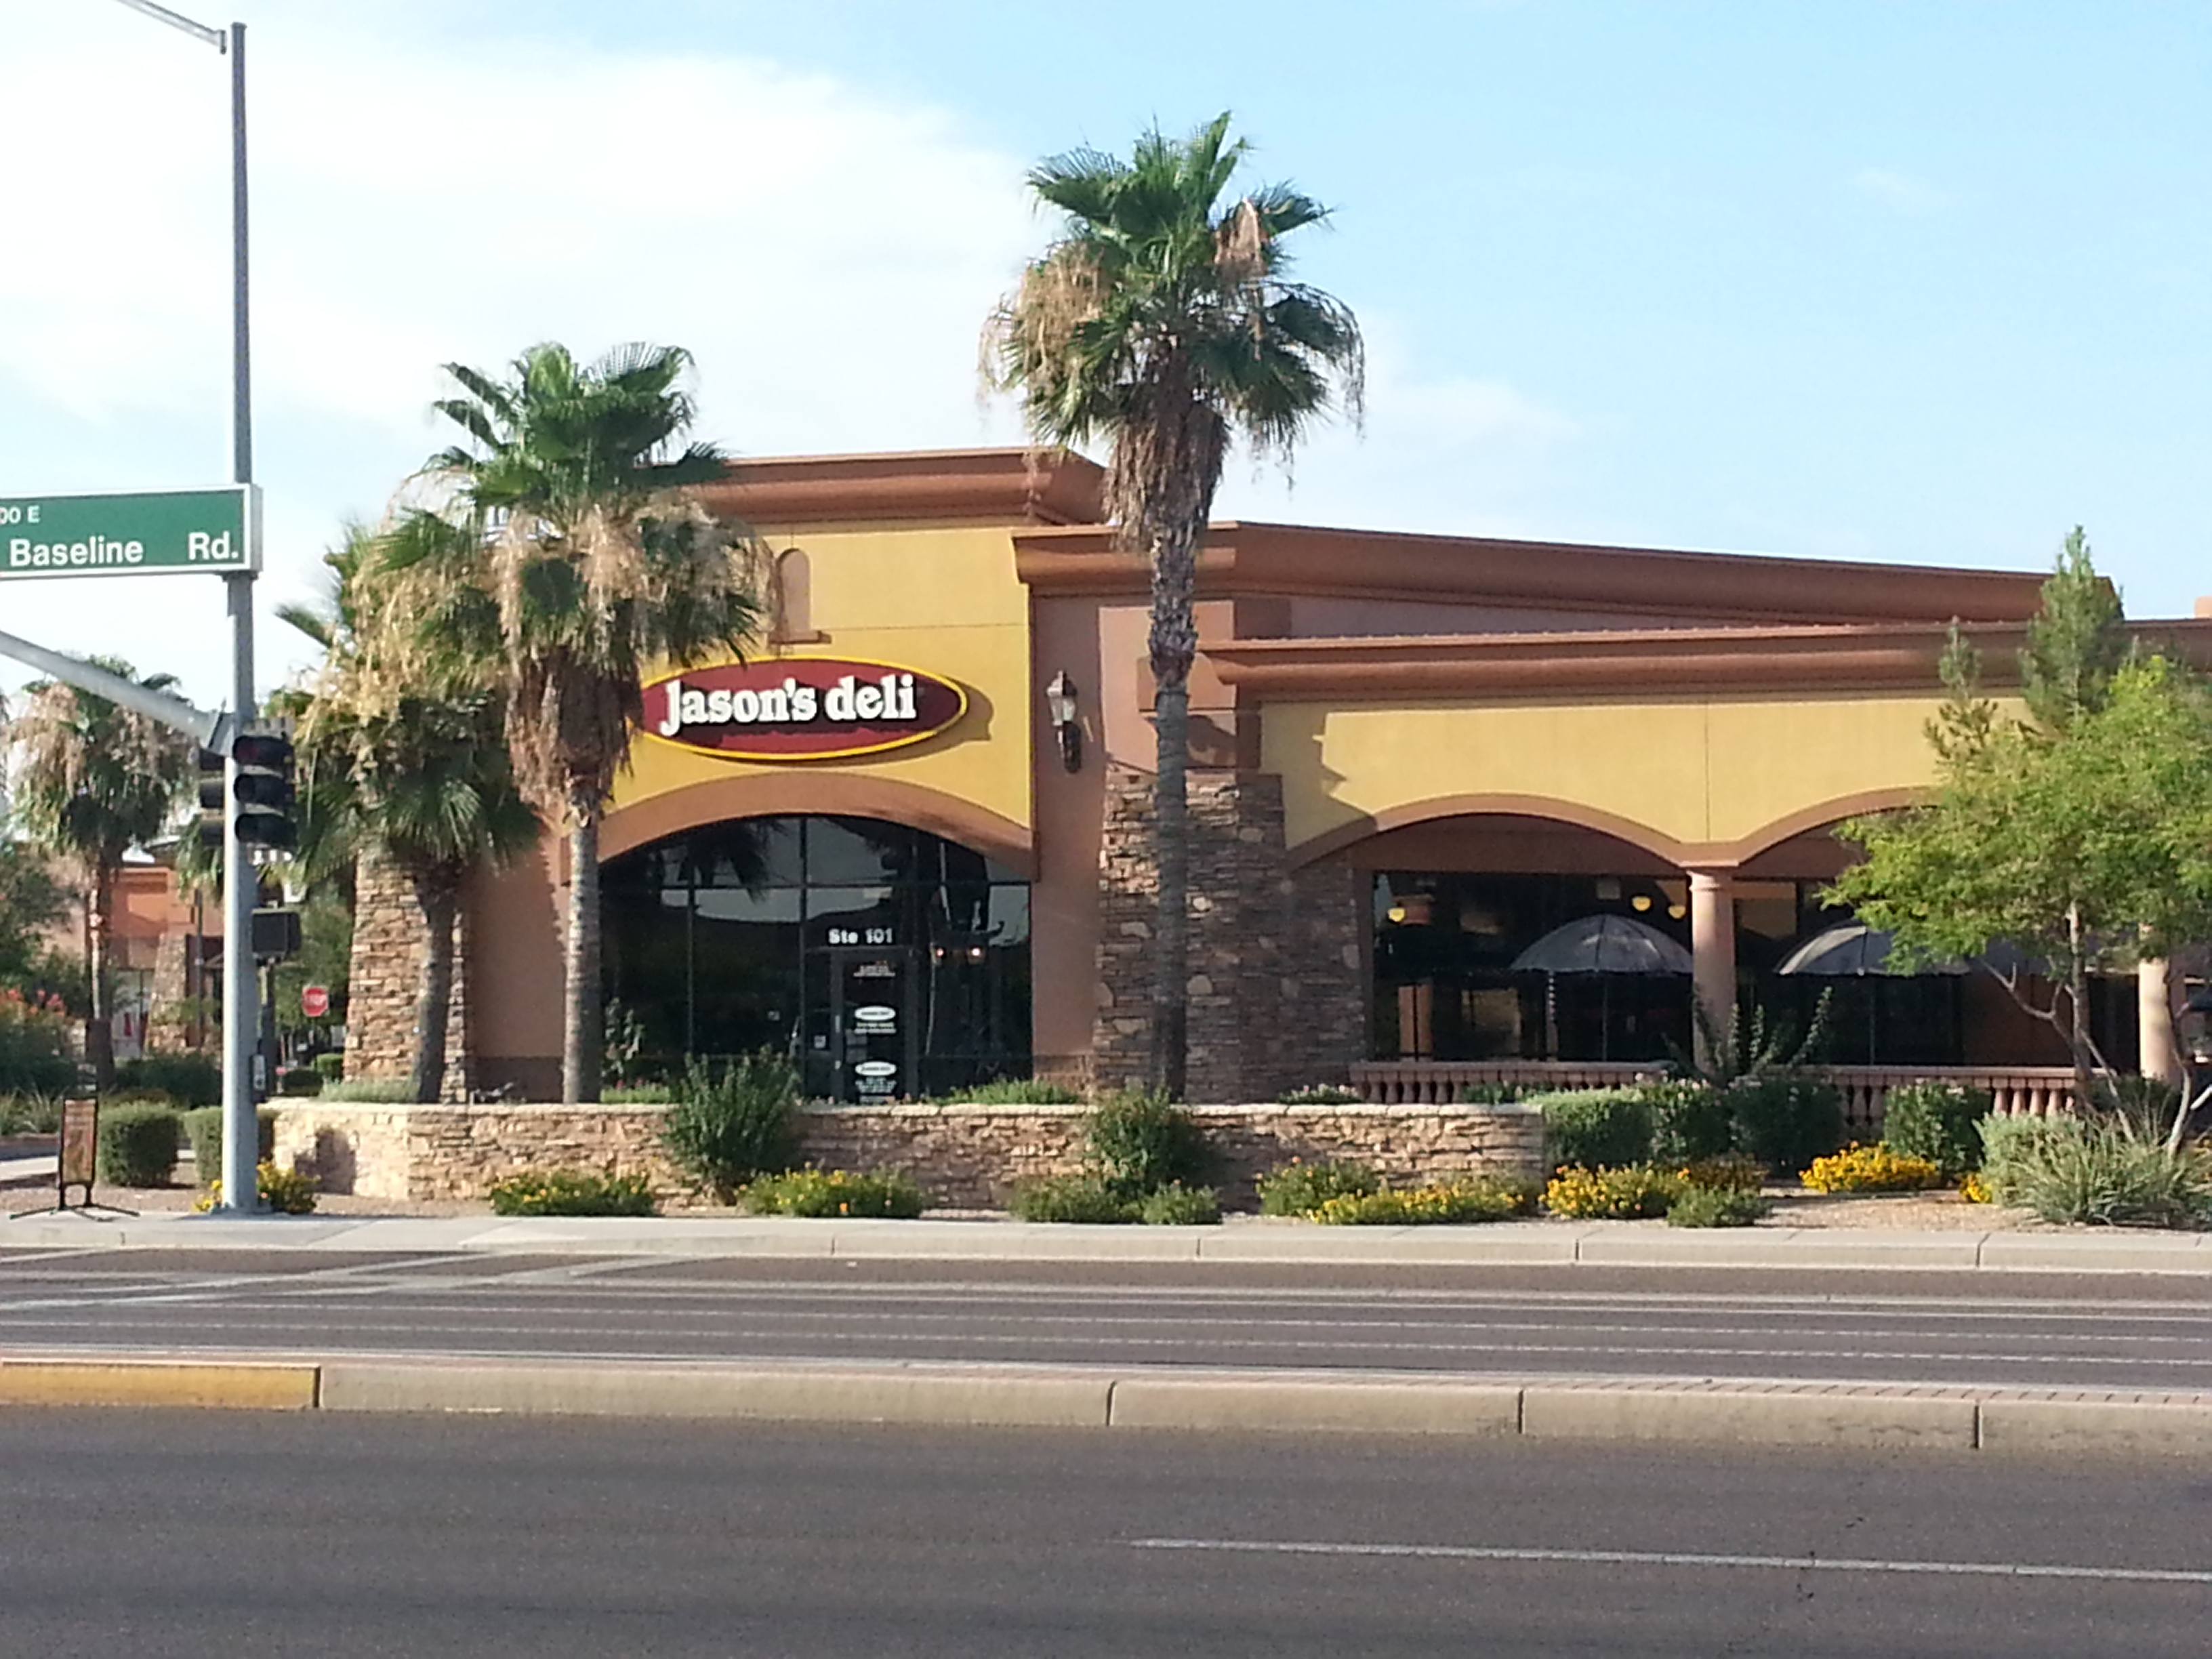 Jason's Deli in Gilbert, AZ